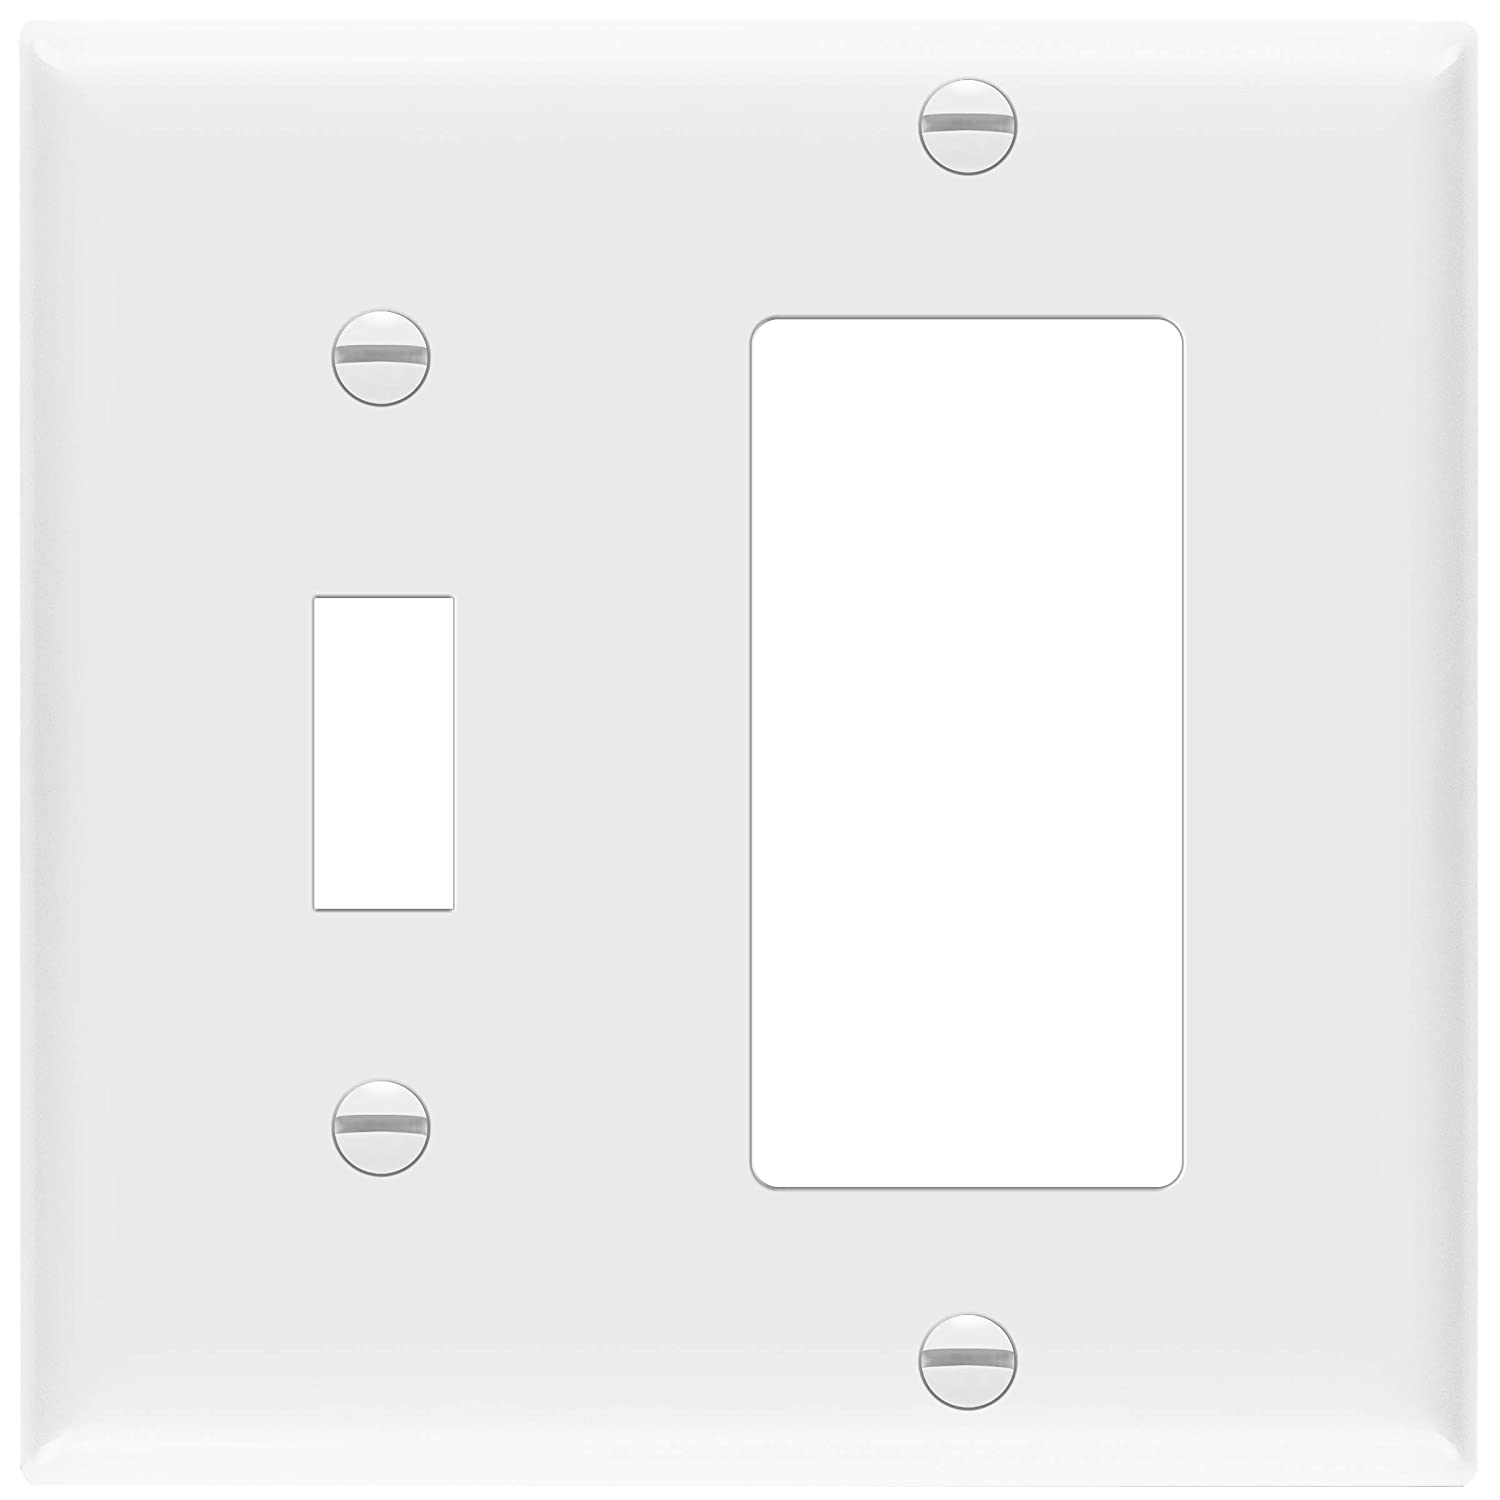 Enerlites 881131 W Decorator Toggle Switch Wall Plate Combination 2 Gang White Standard Size Unbreakable Polycarbonate Replacement Receptacle Faceplates Outlet Cover Amazon Com Home Improvement